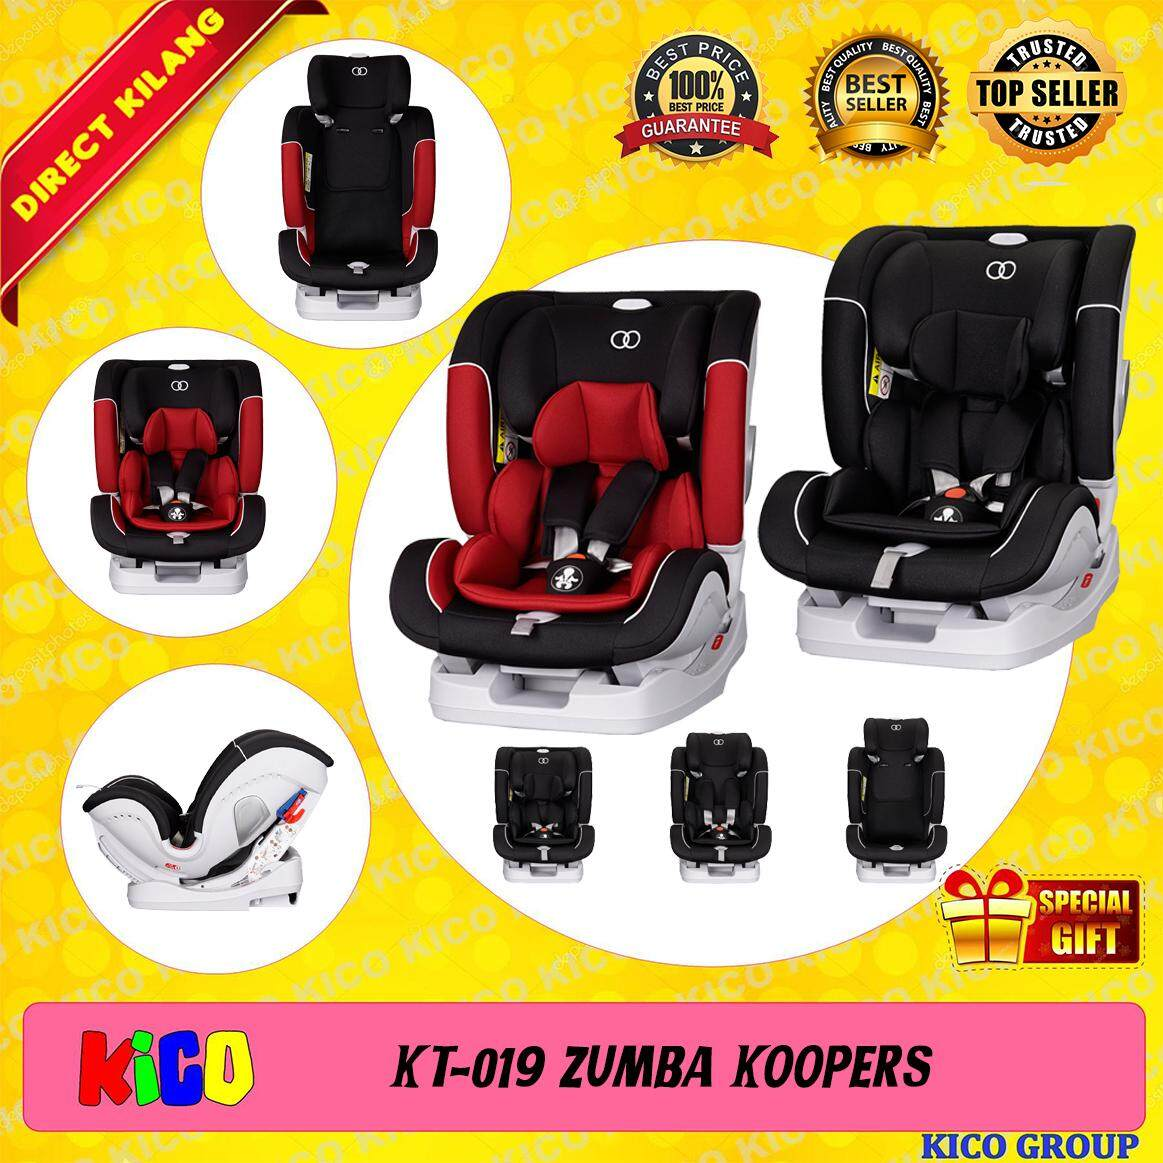 ⚡ SPECIAL FREE GIFT ⚡ Koopers Zumba Carseat Suitable for newborn up to 36kg With 6 Years Koopers Official Warranty, ECE Certified [FREE SHIPPING]